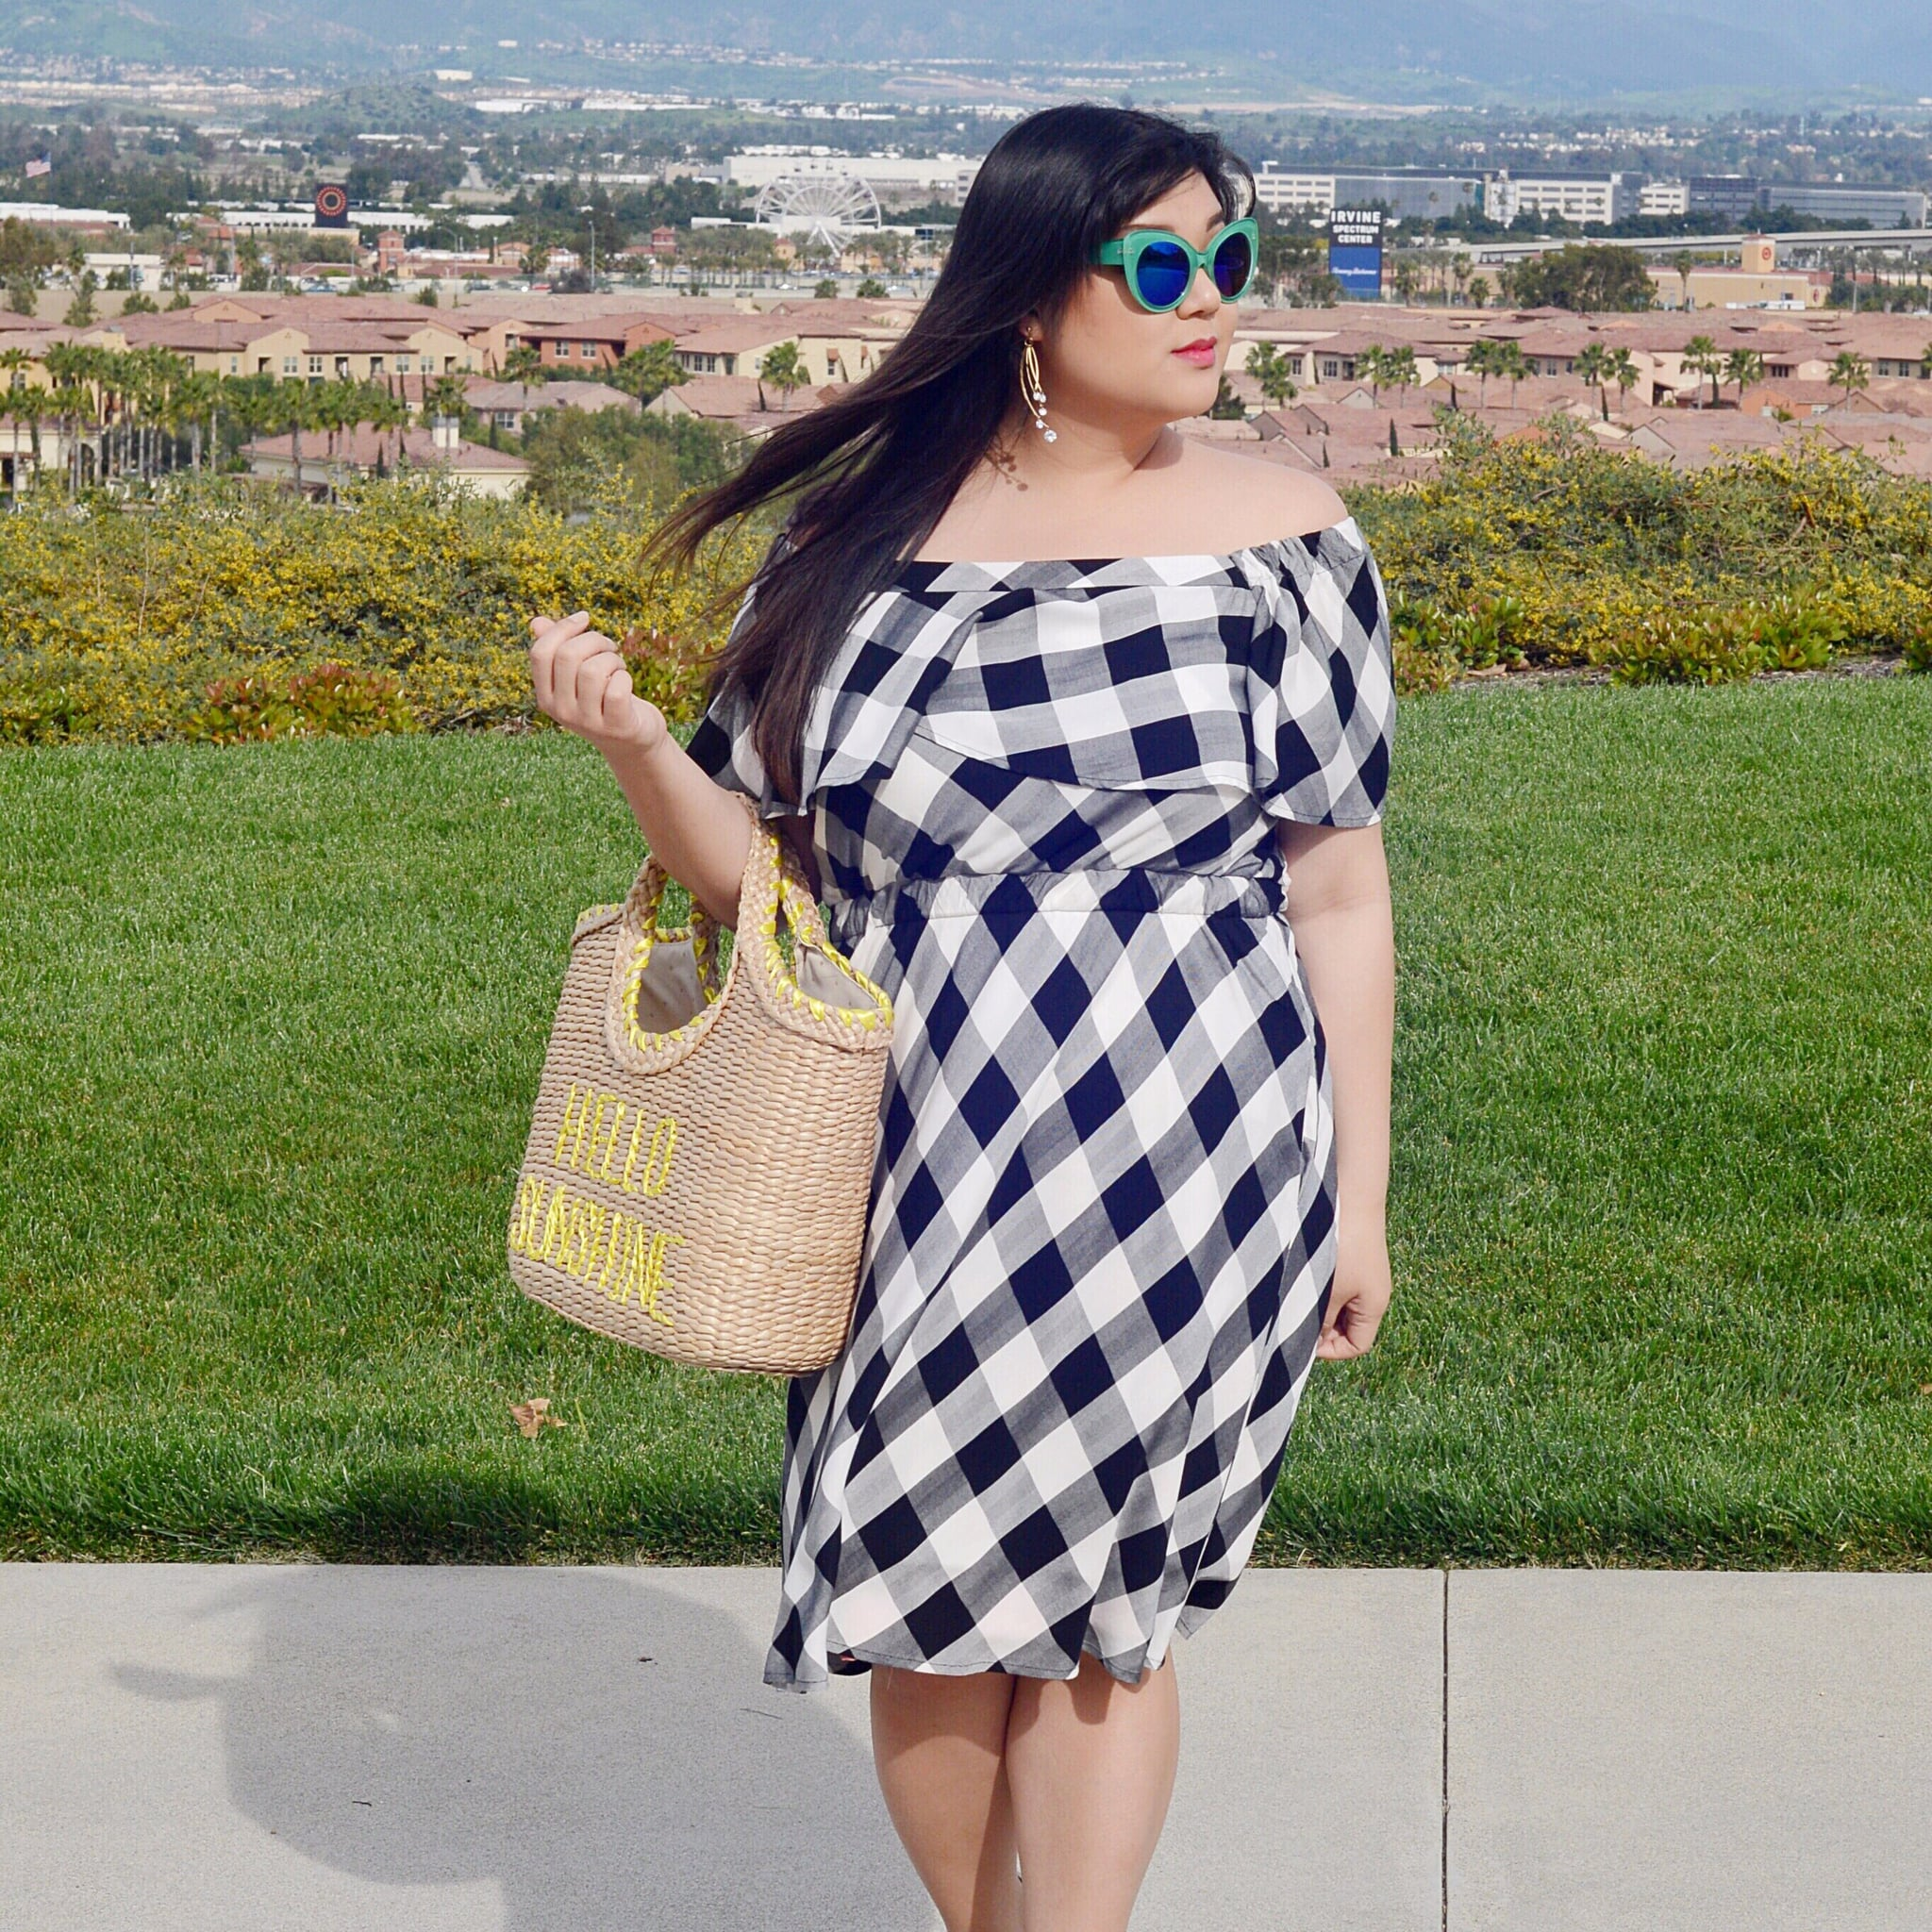 plus size outfit ideas for spring fashion